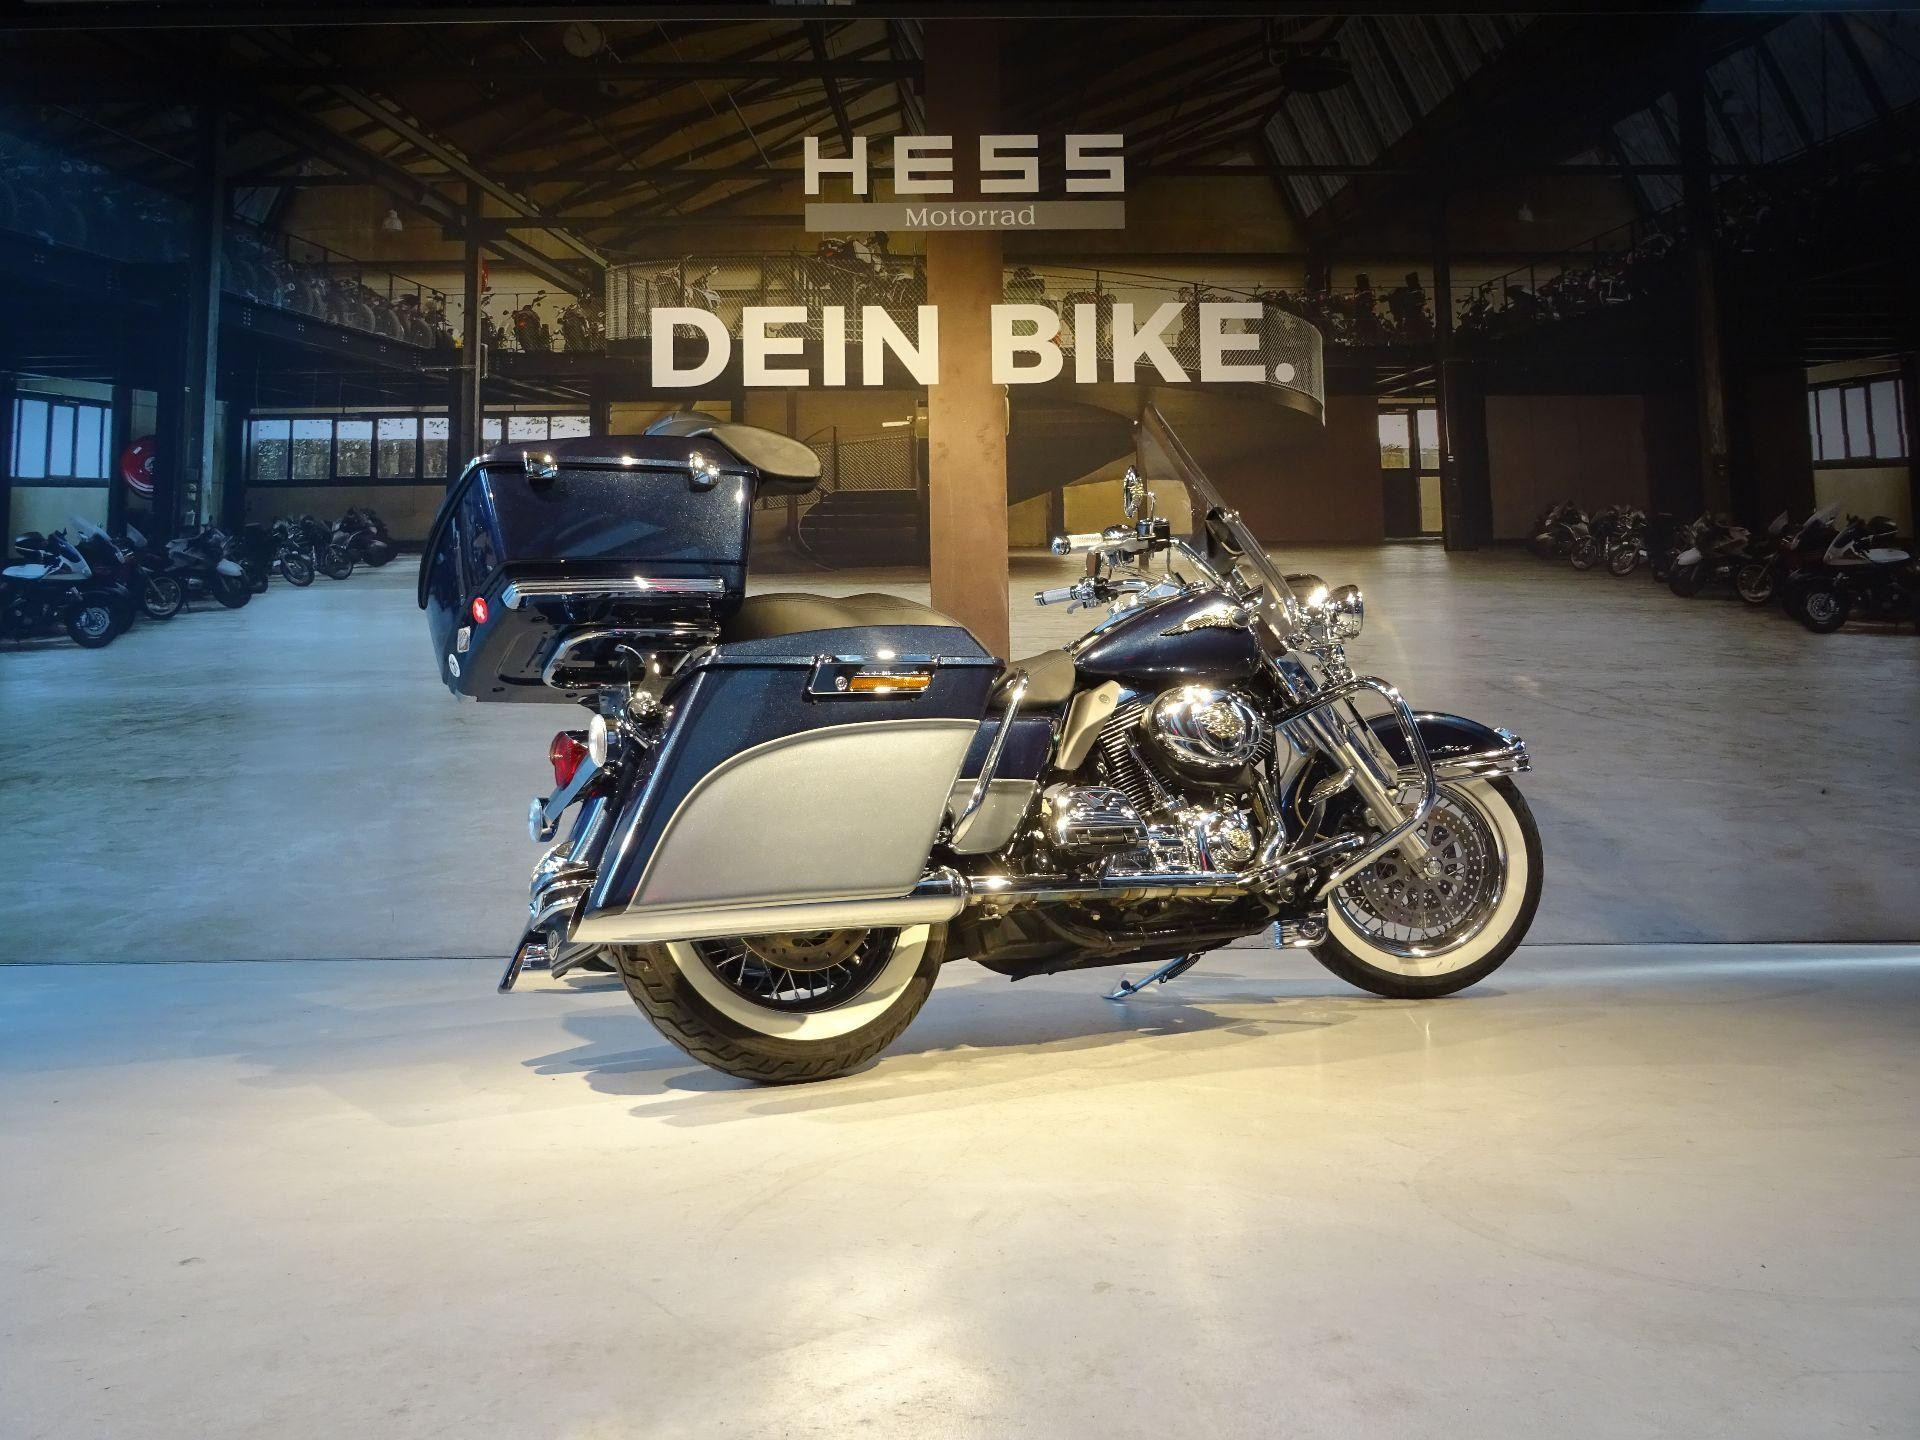 moto occasions acheter harley davidson flhrc 1584 road king classic hess motorrad stettlen. Black Bedroom Furniture Sets. Home Design Ideas